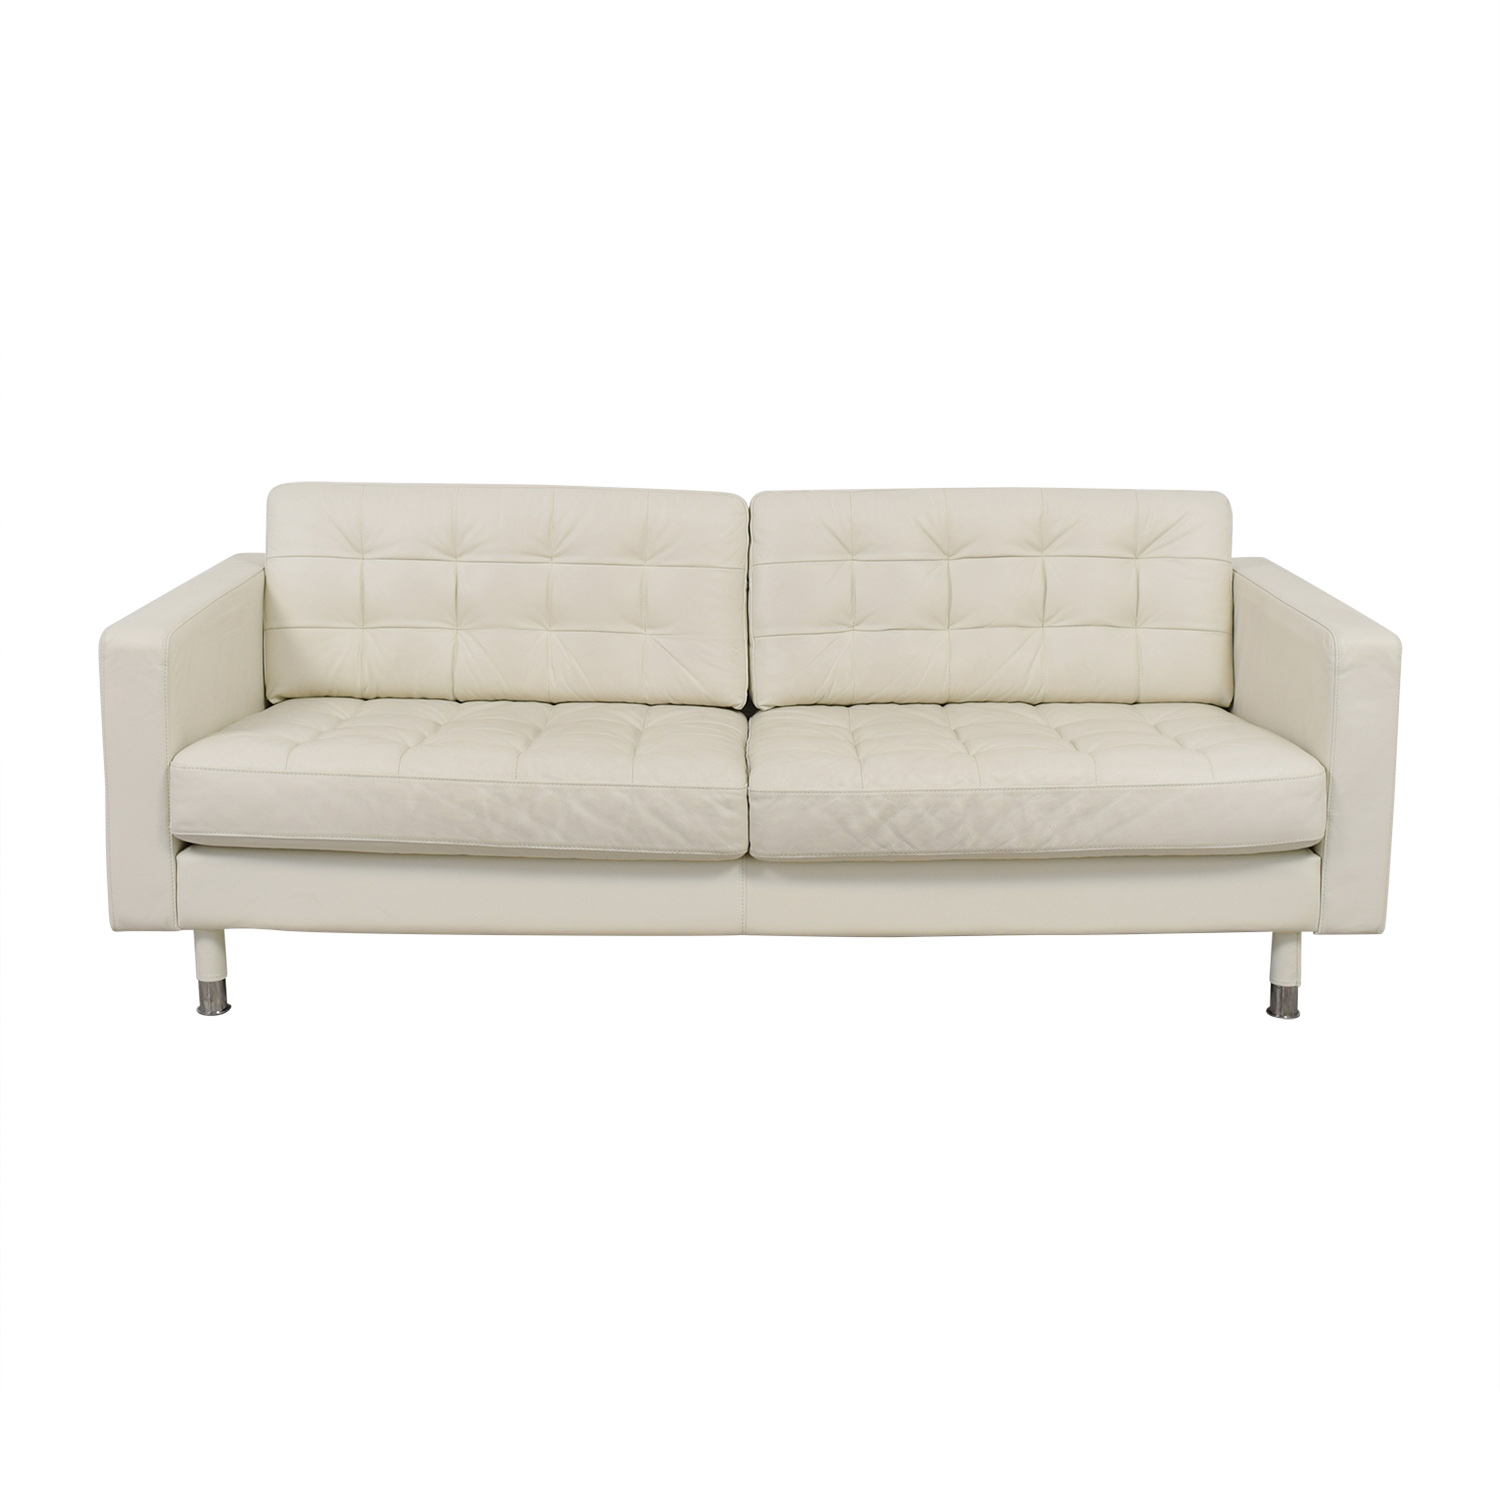 Ikea White Leather Sofa Leather Faux Couches Chairs